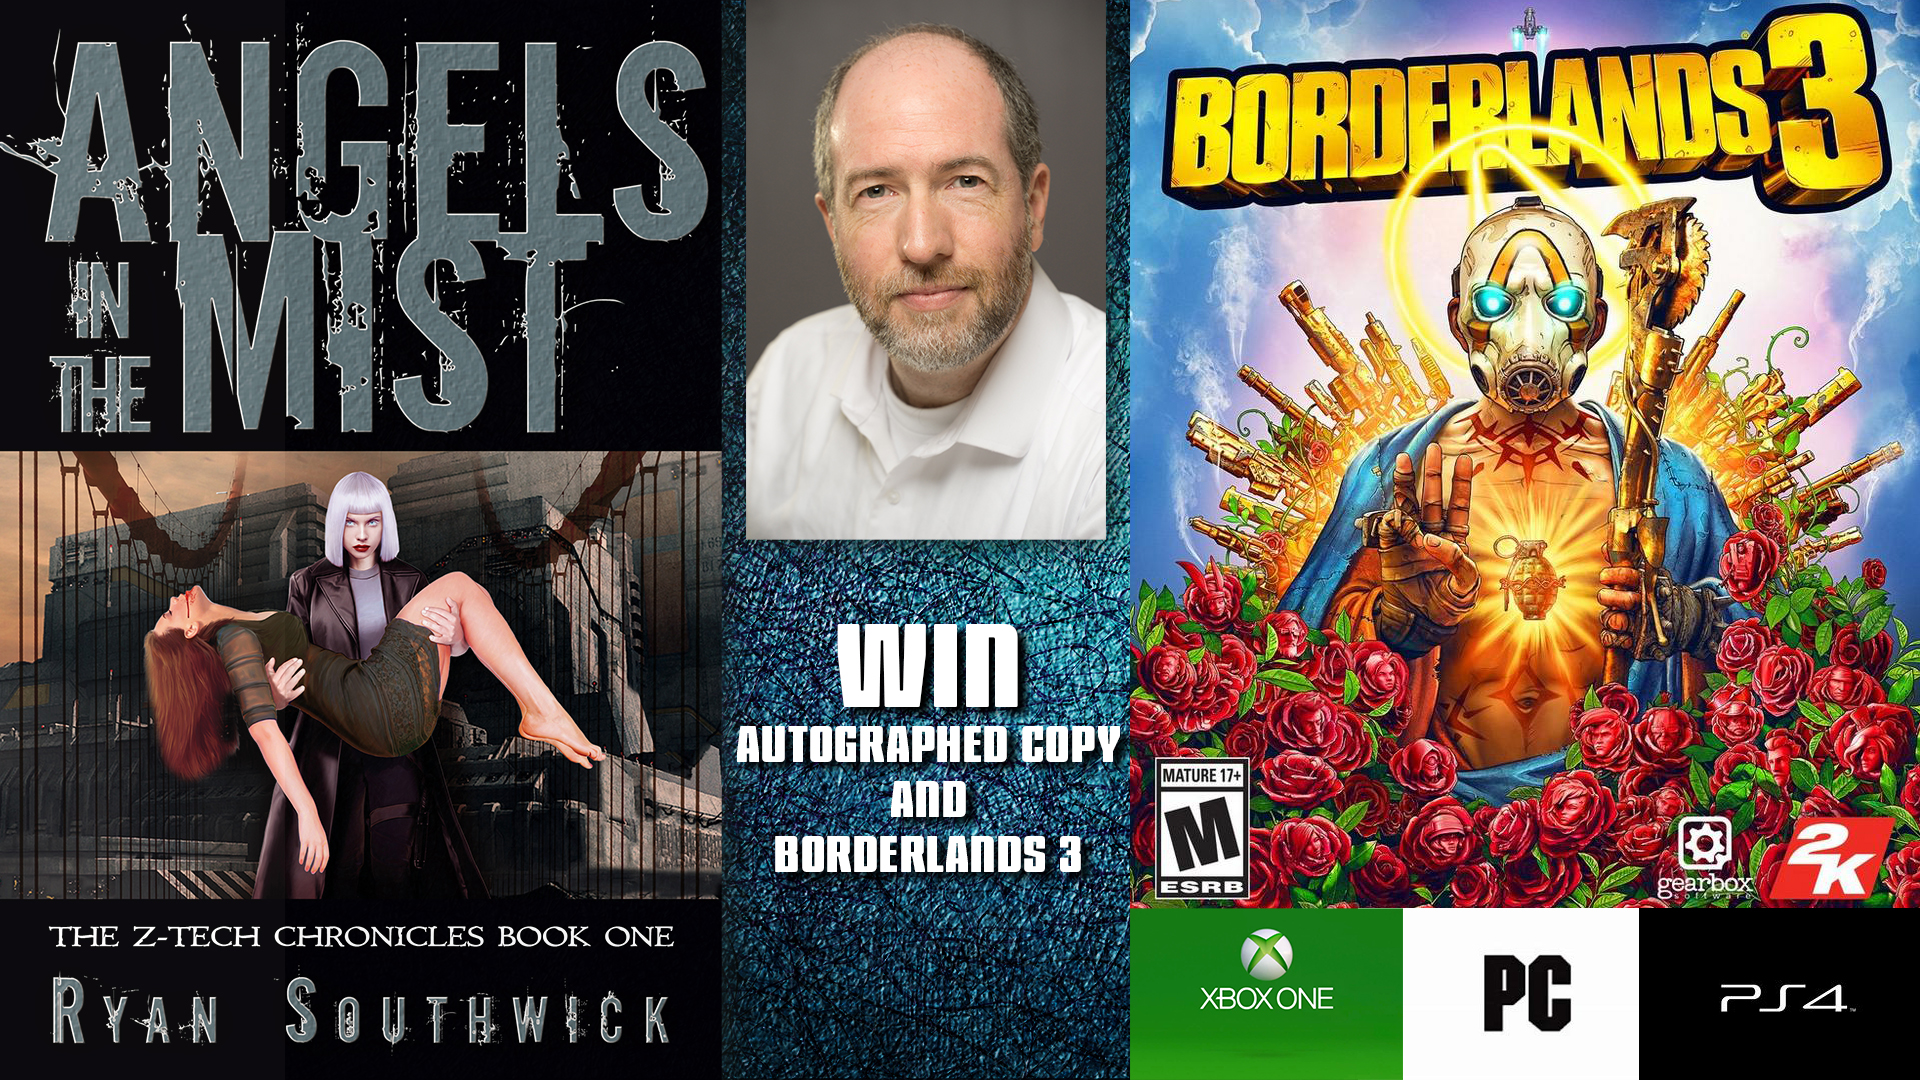 Ryan-Southwick-book-and-borderlands 3-giveaway